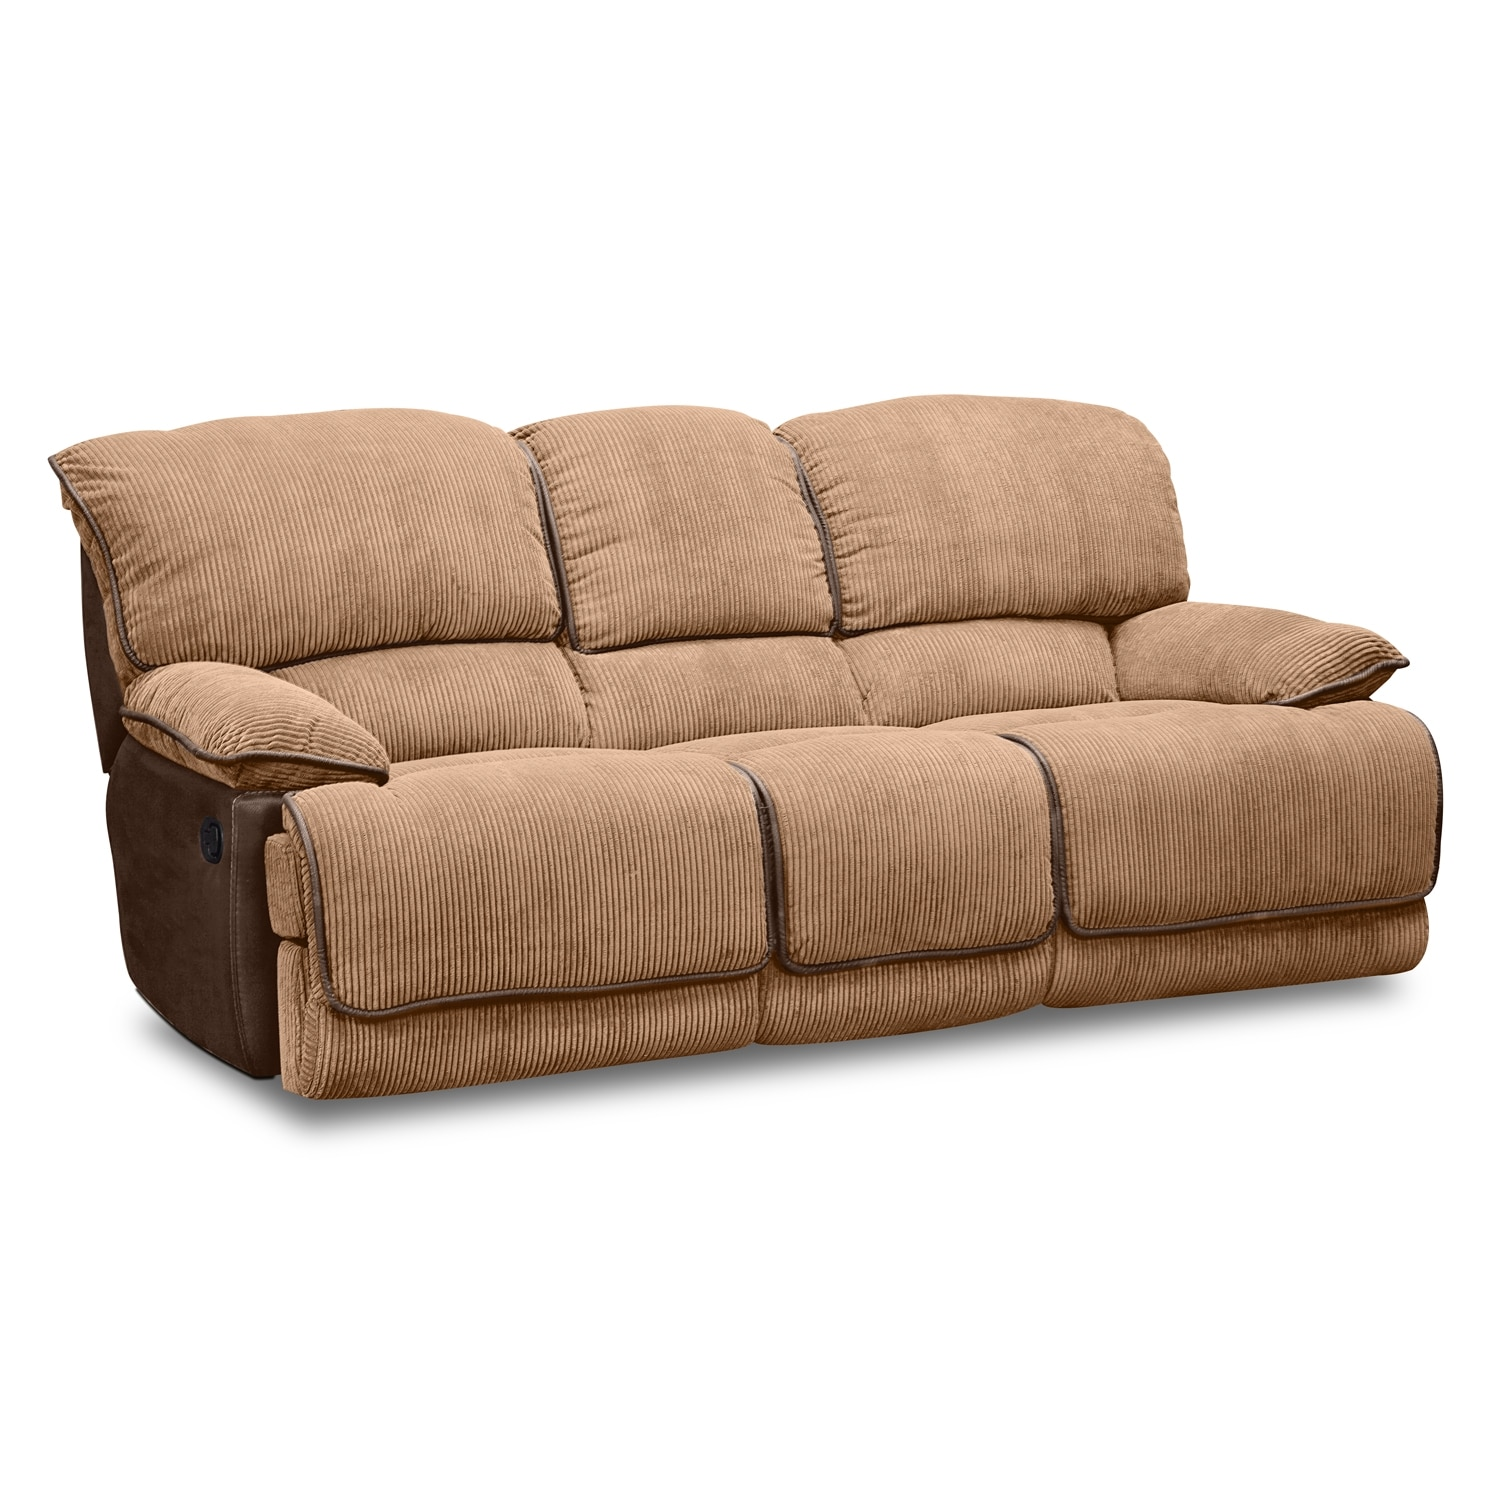 On sale furniture value city furniture value city furniture laguna dual reclining sofa camel parisarafo Gallery